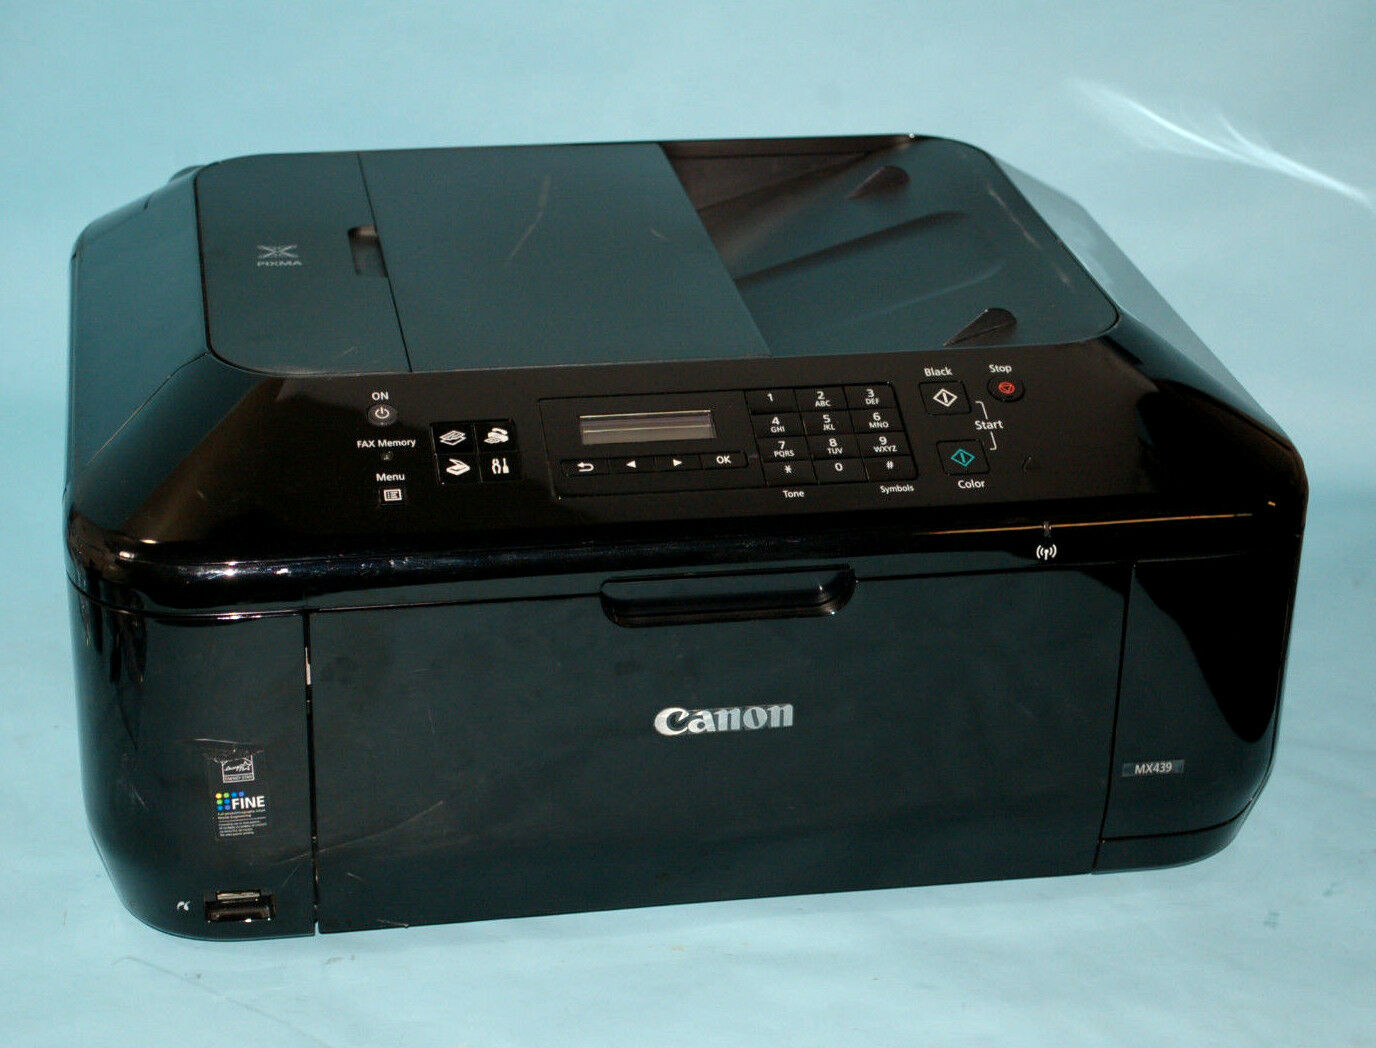 Canon All In One Canon Pixma Mx439 All In One Inkjet Printer